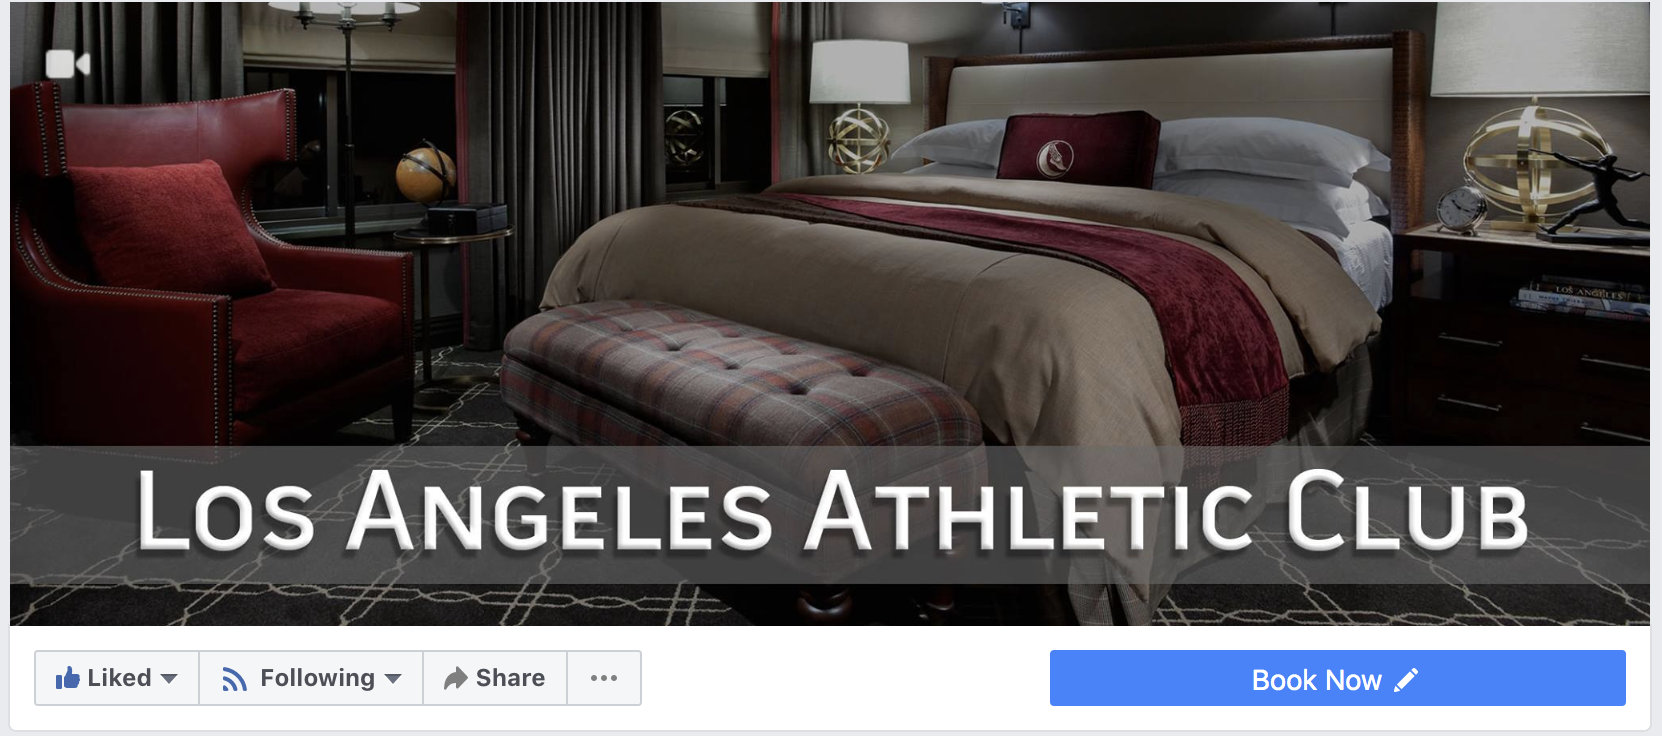 Book Now Button On Los Angeles Athletic Club Hotel Facebook